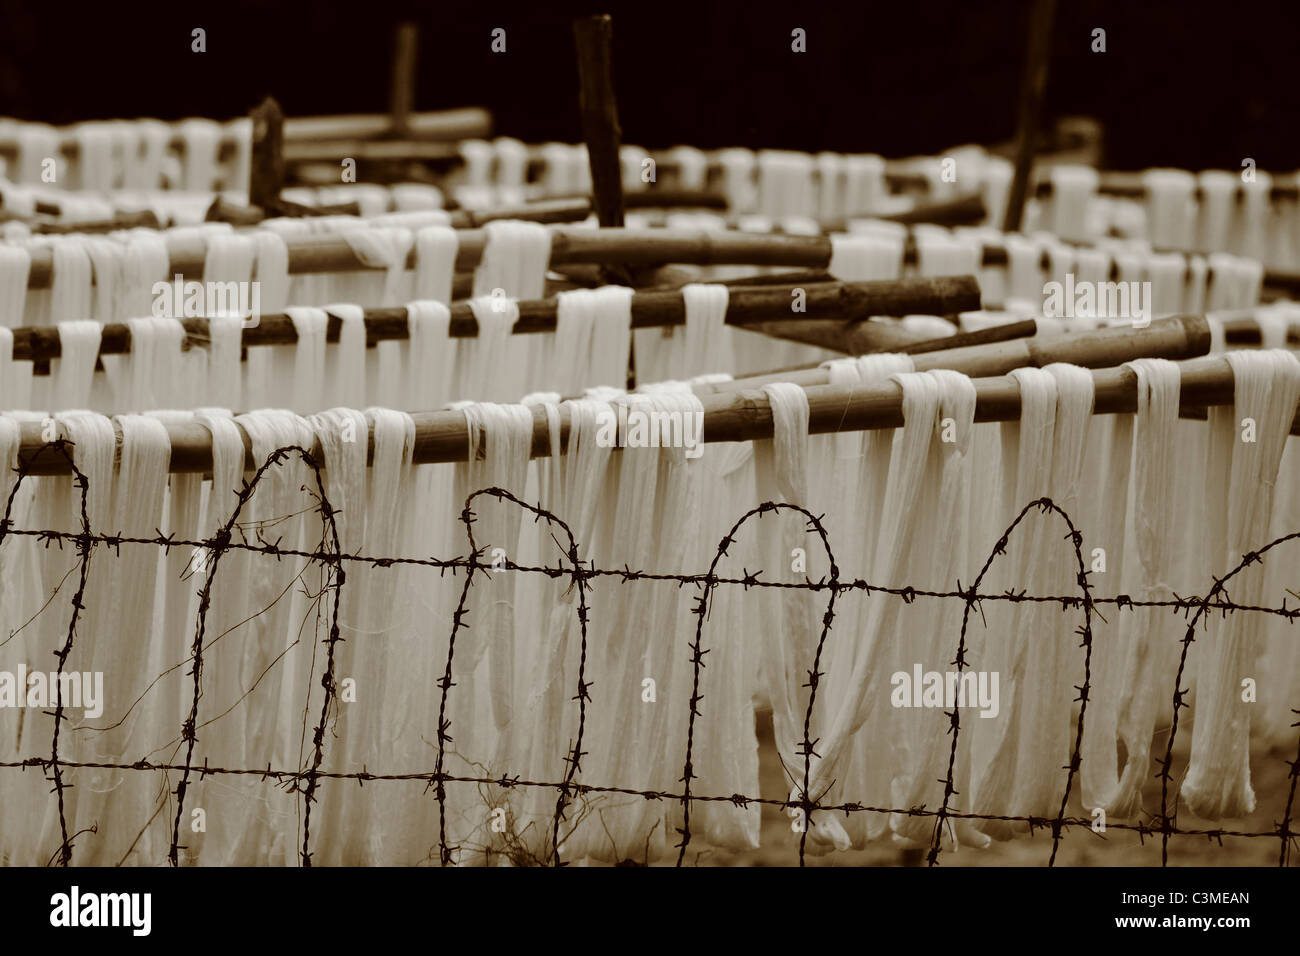 Silk strings against barbed wire - Stock Image